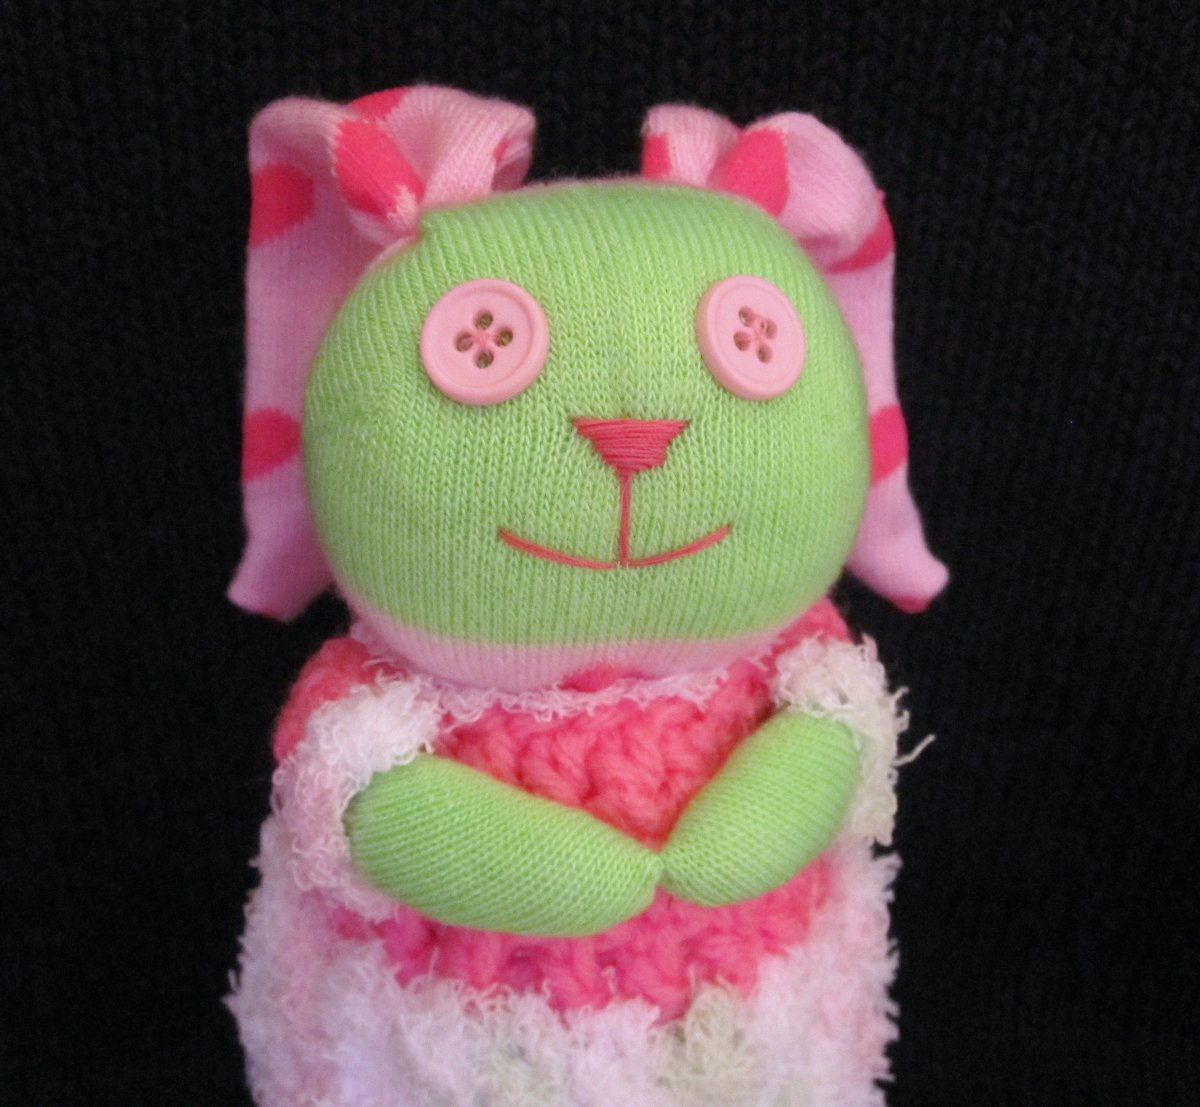 Scrap Bunnies, How to Make Adorable Stuffed Bunnies Out of ...